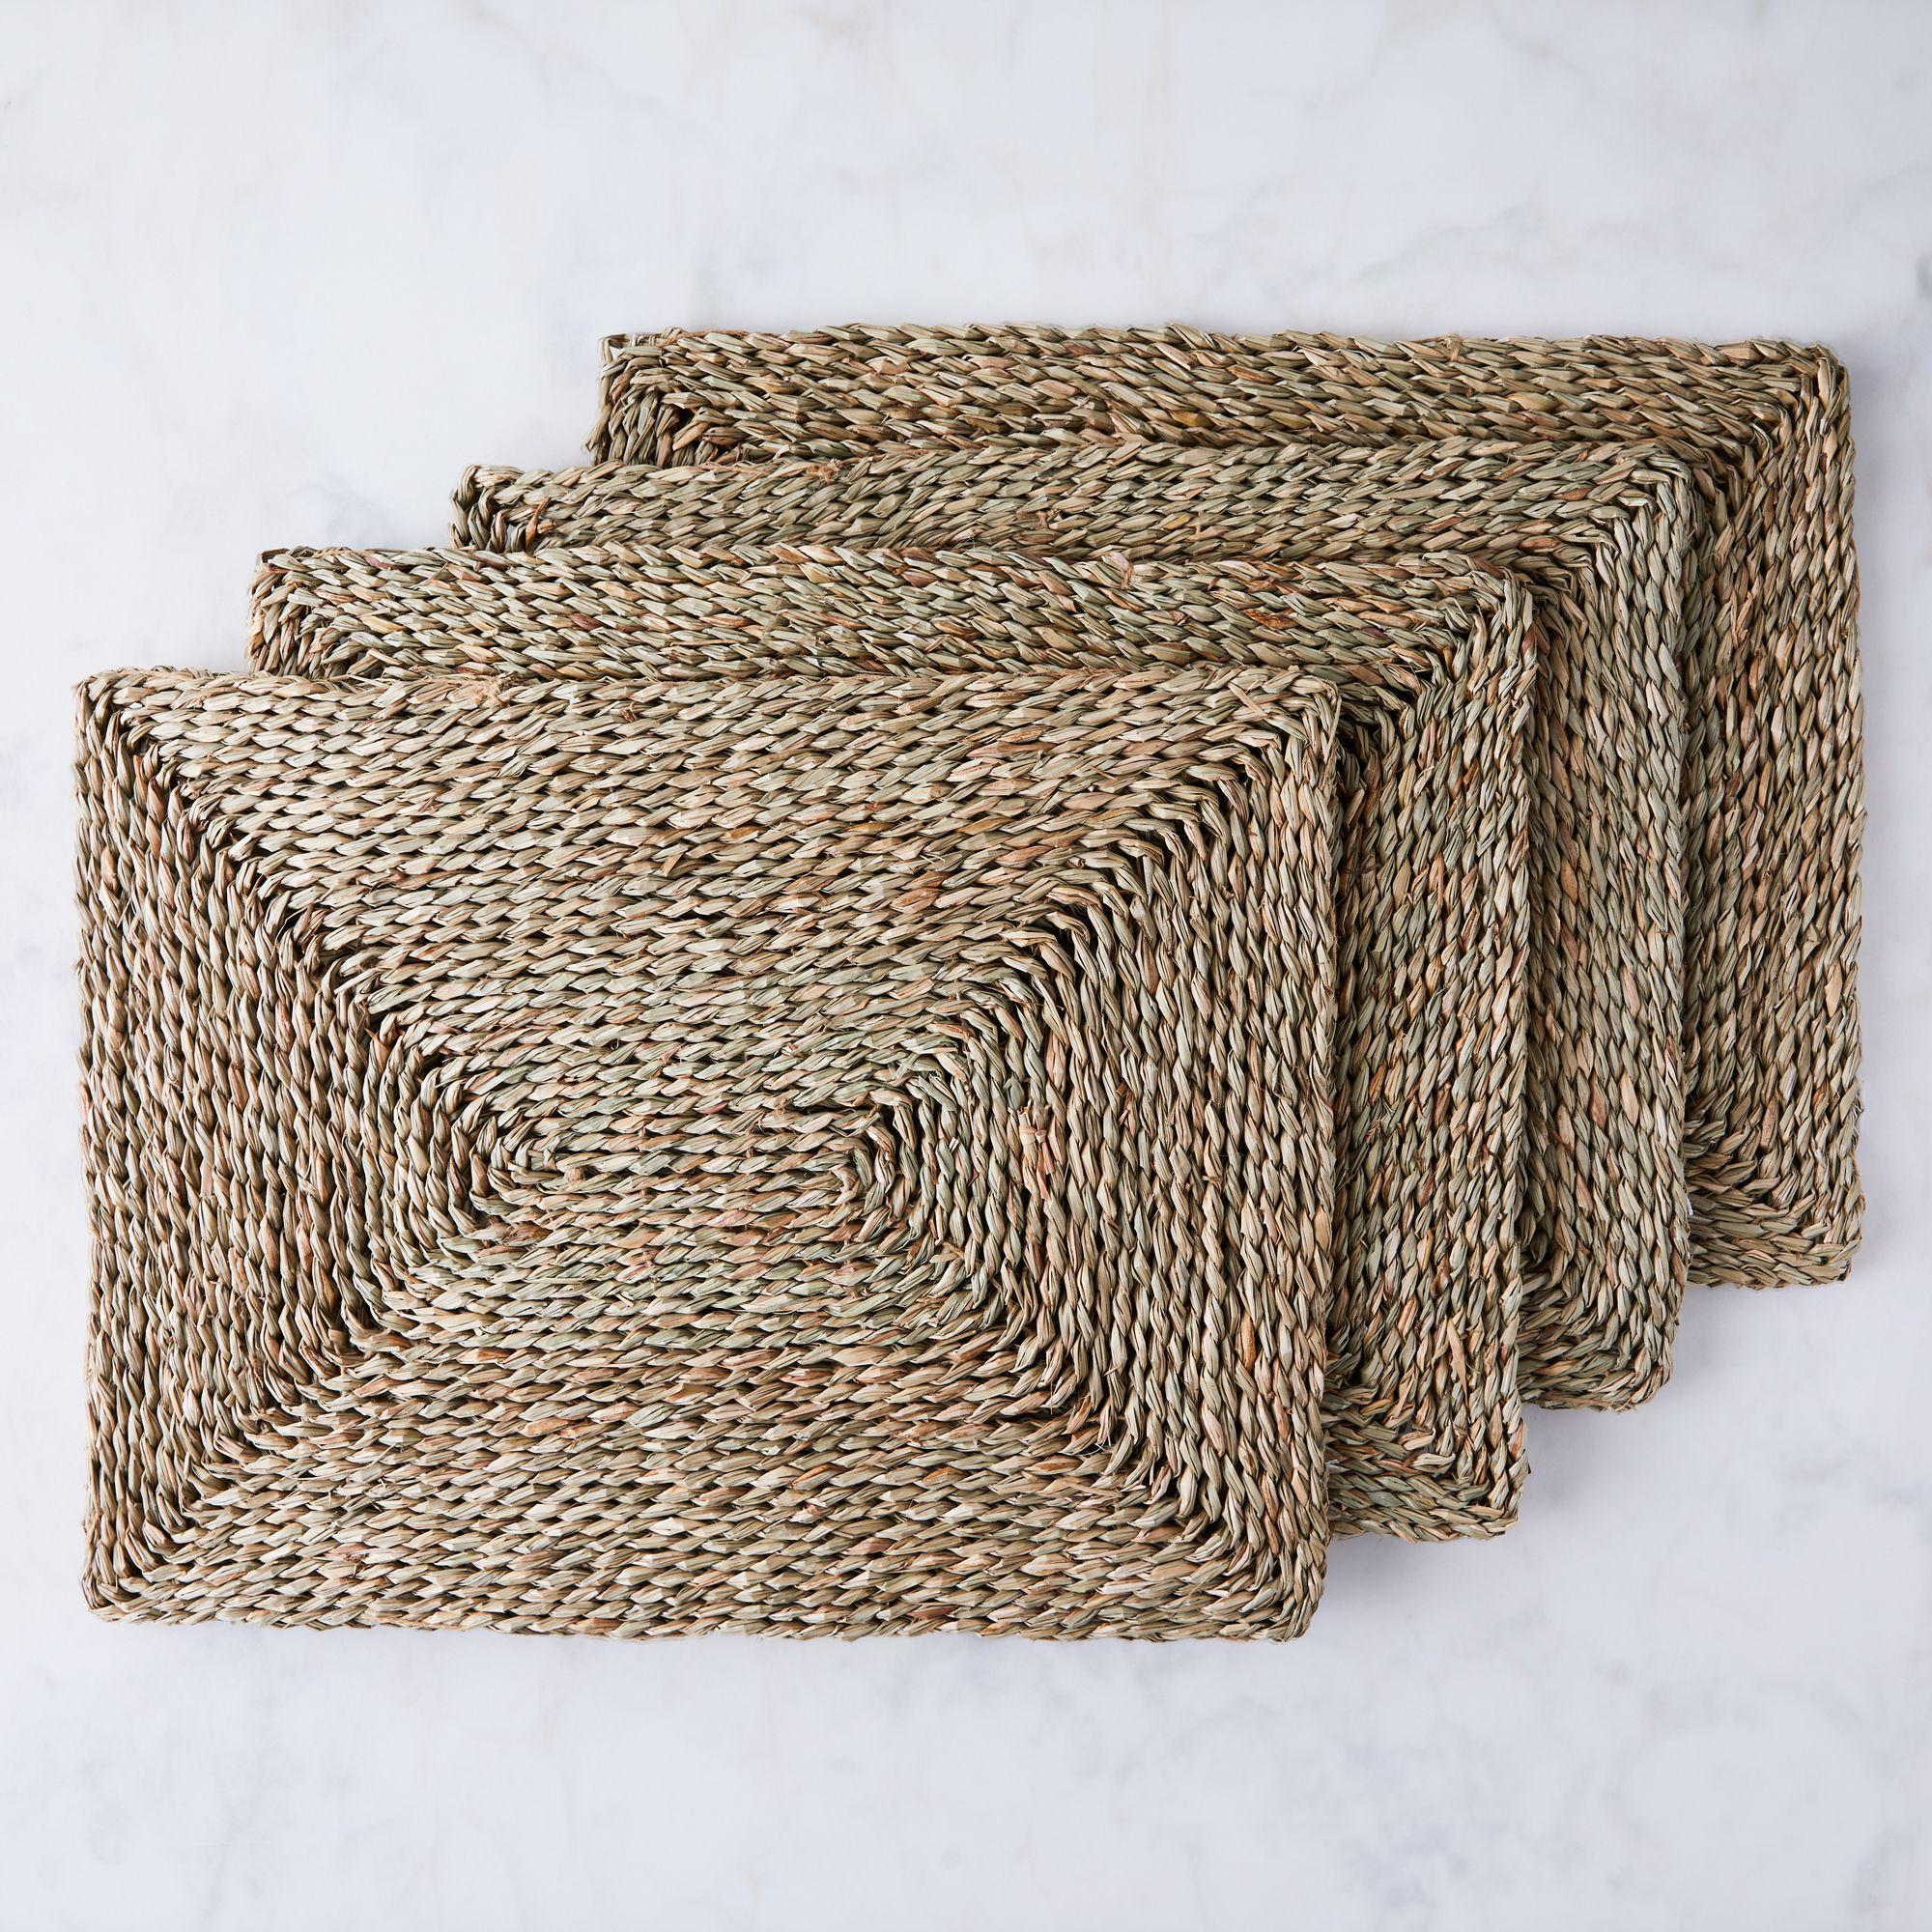 Blue Pheasant Woven Seagrass Placemat (Set of 4)  - Rectangular